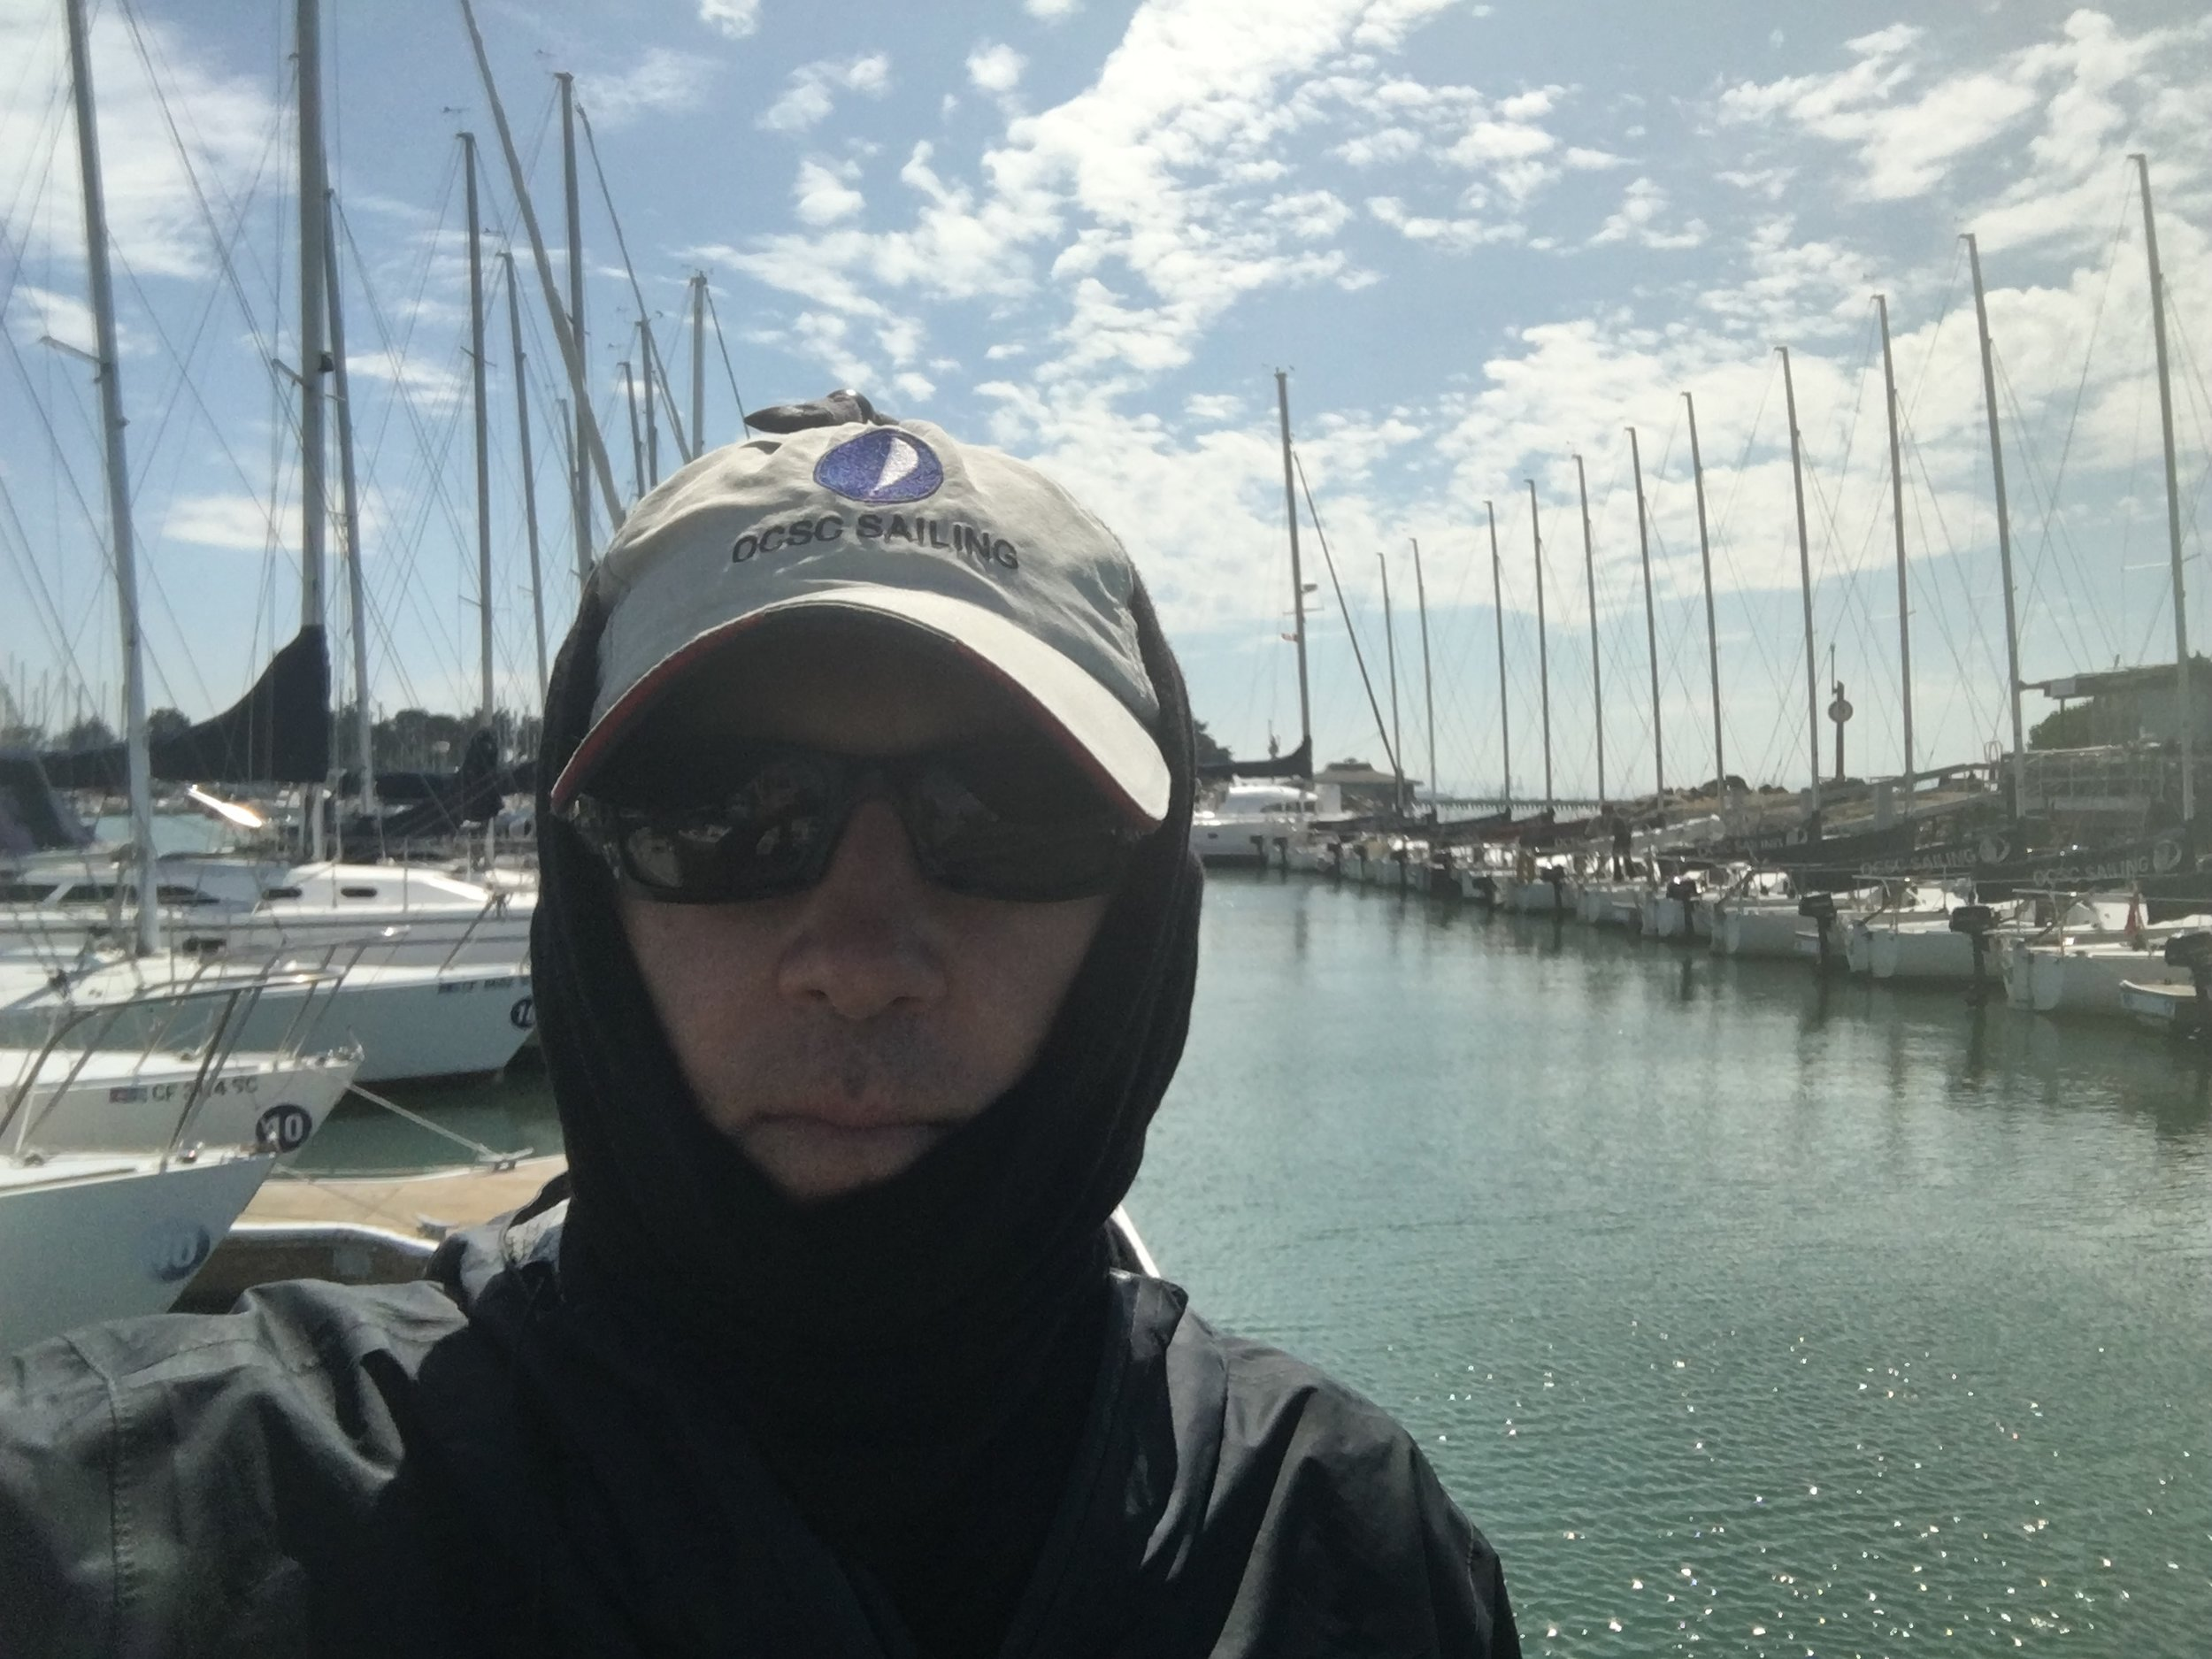 Bundled up for sun protection - spending 5 or 6 days on the water per week means I have to be careful!